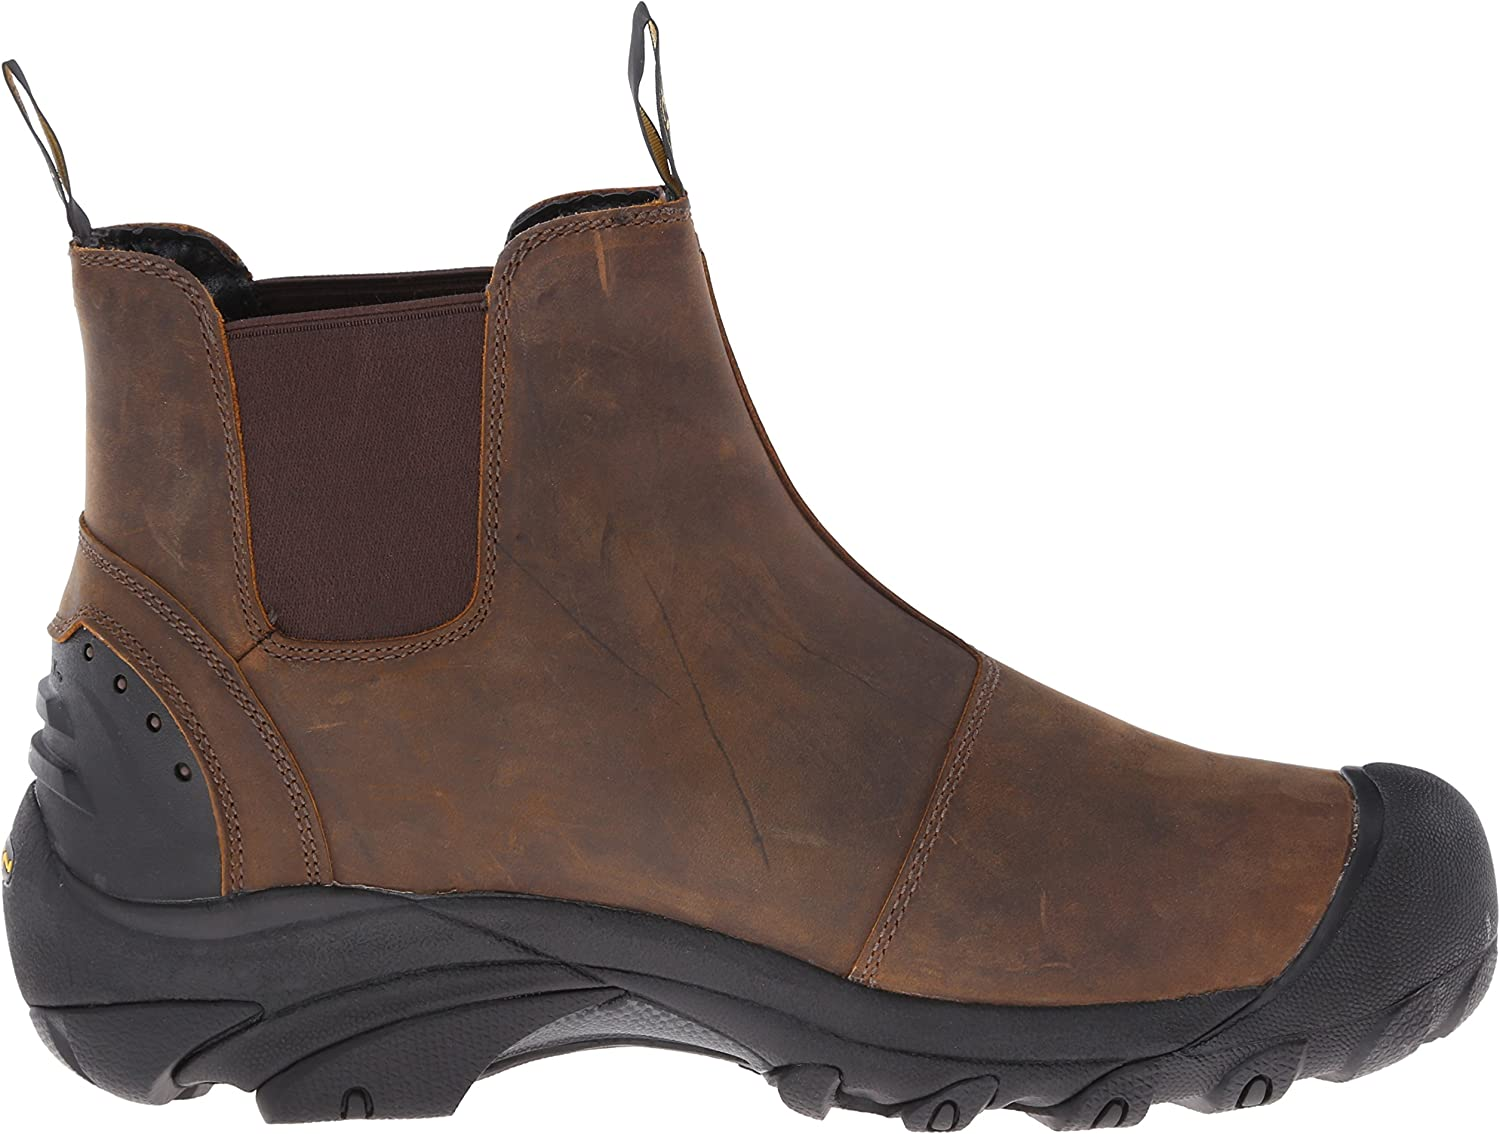 Keen Detroit Slip On Work Boot 9 EE Wide Cascade Brown